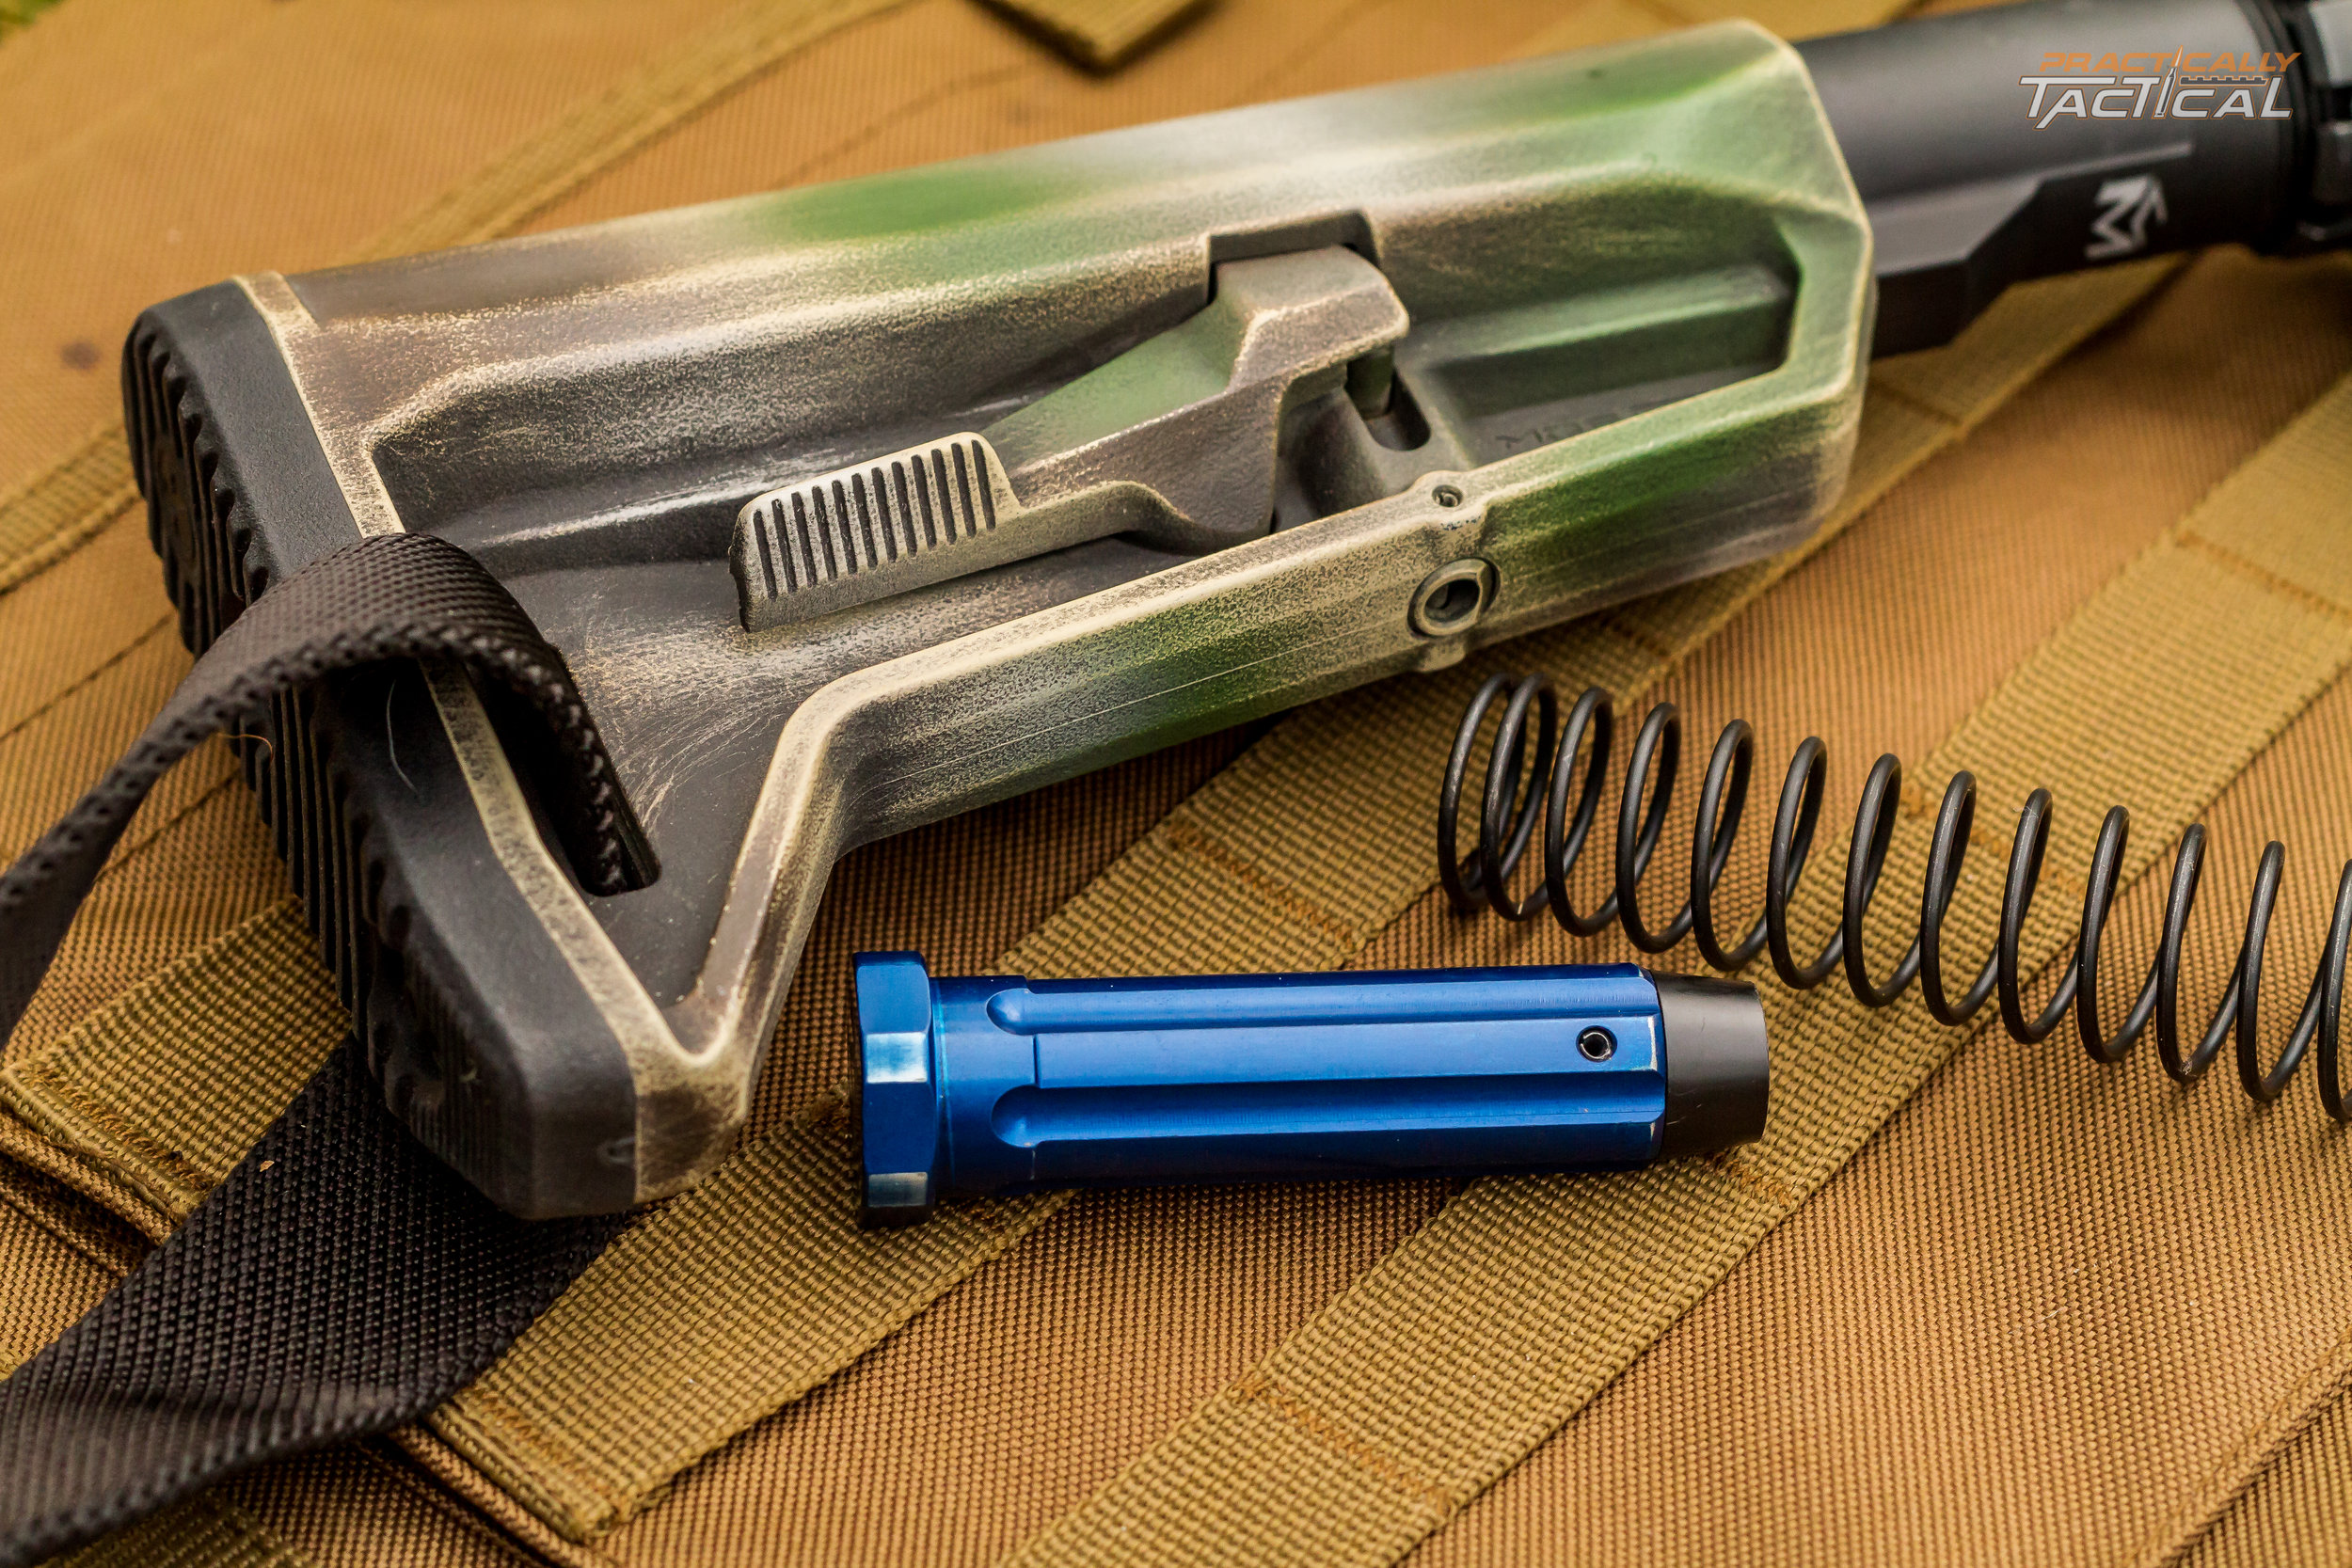 The SL-K stock compliments this rifle perfectly with it's lightweight compact design